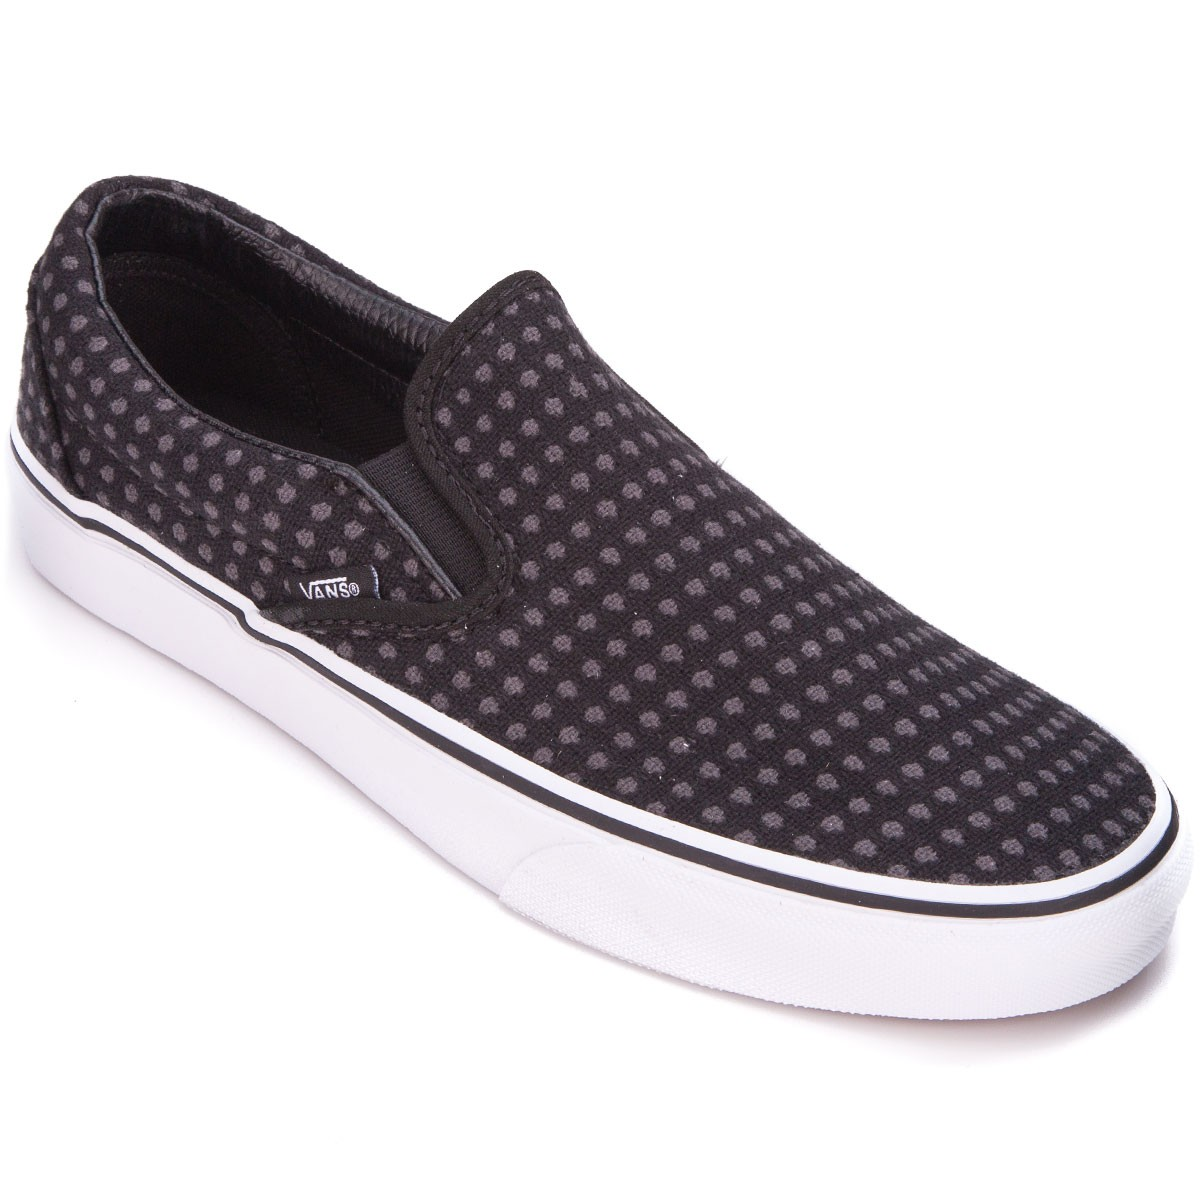 Vans Classic Slip-On Womens Shoes - Wool Dots Black White - 3.5 599fc16603